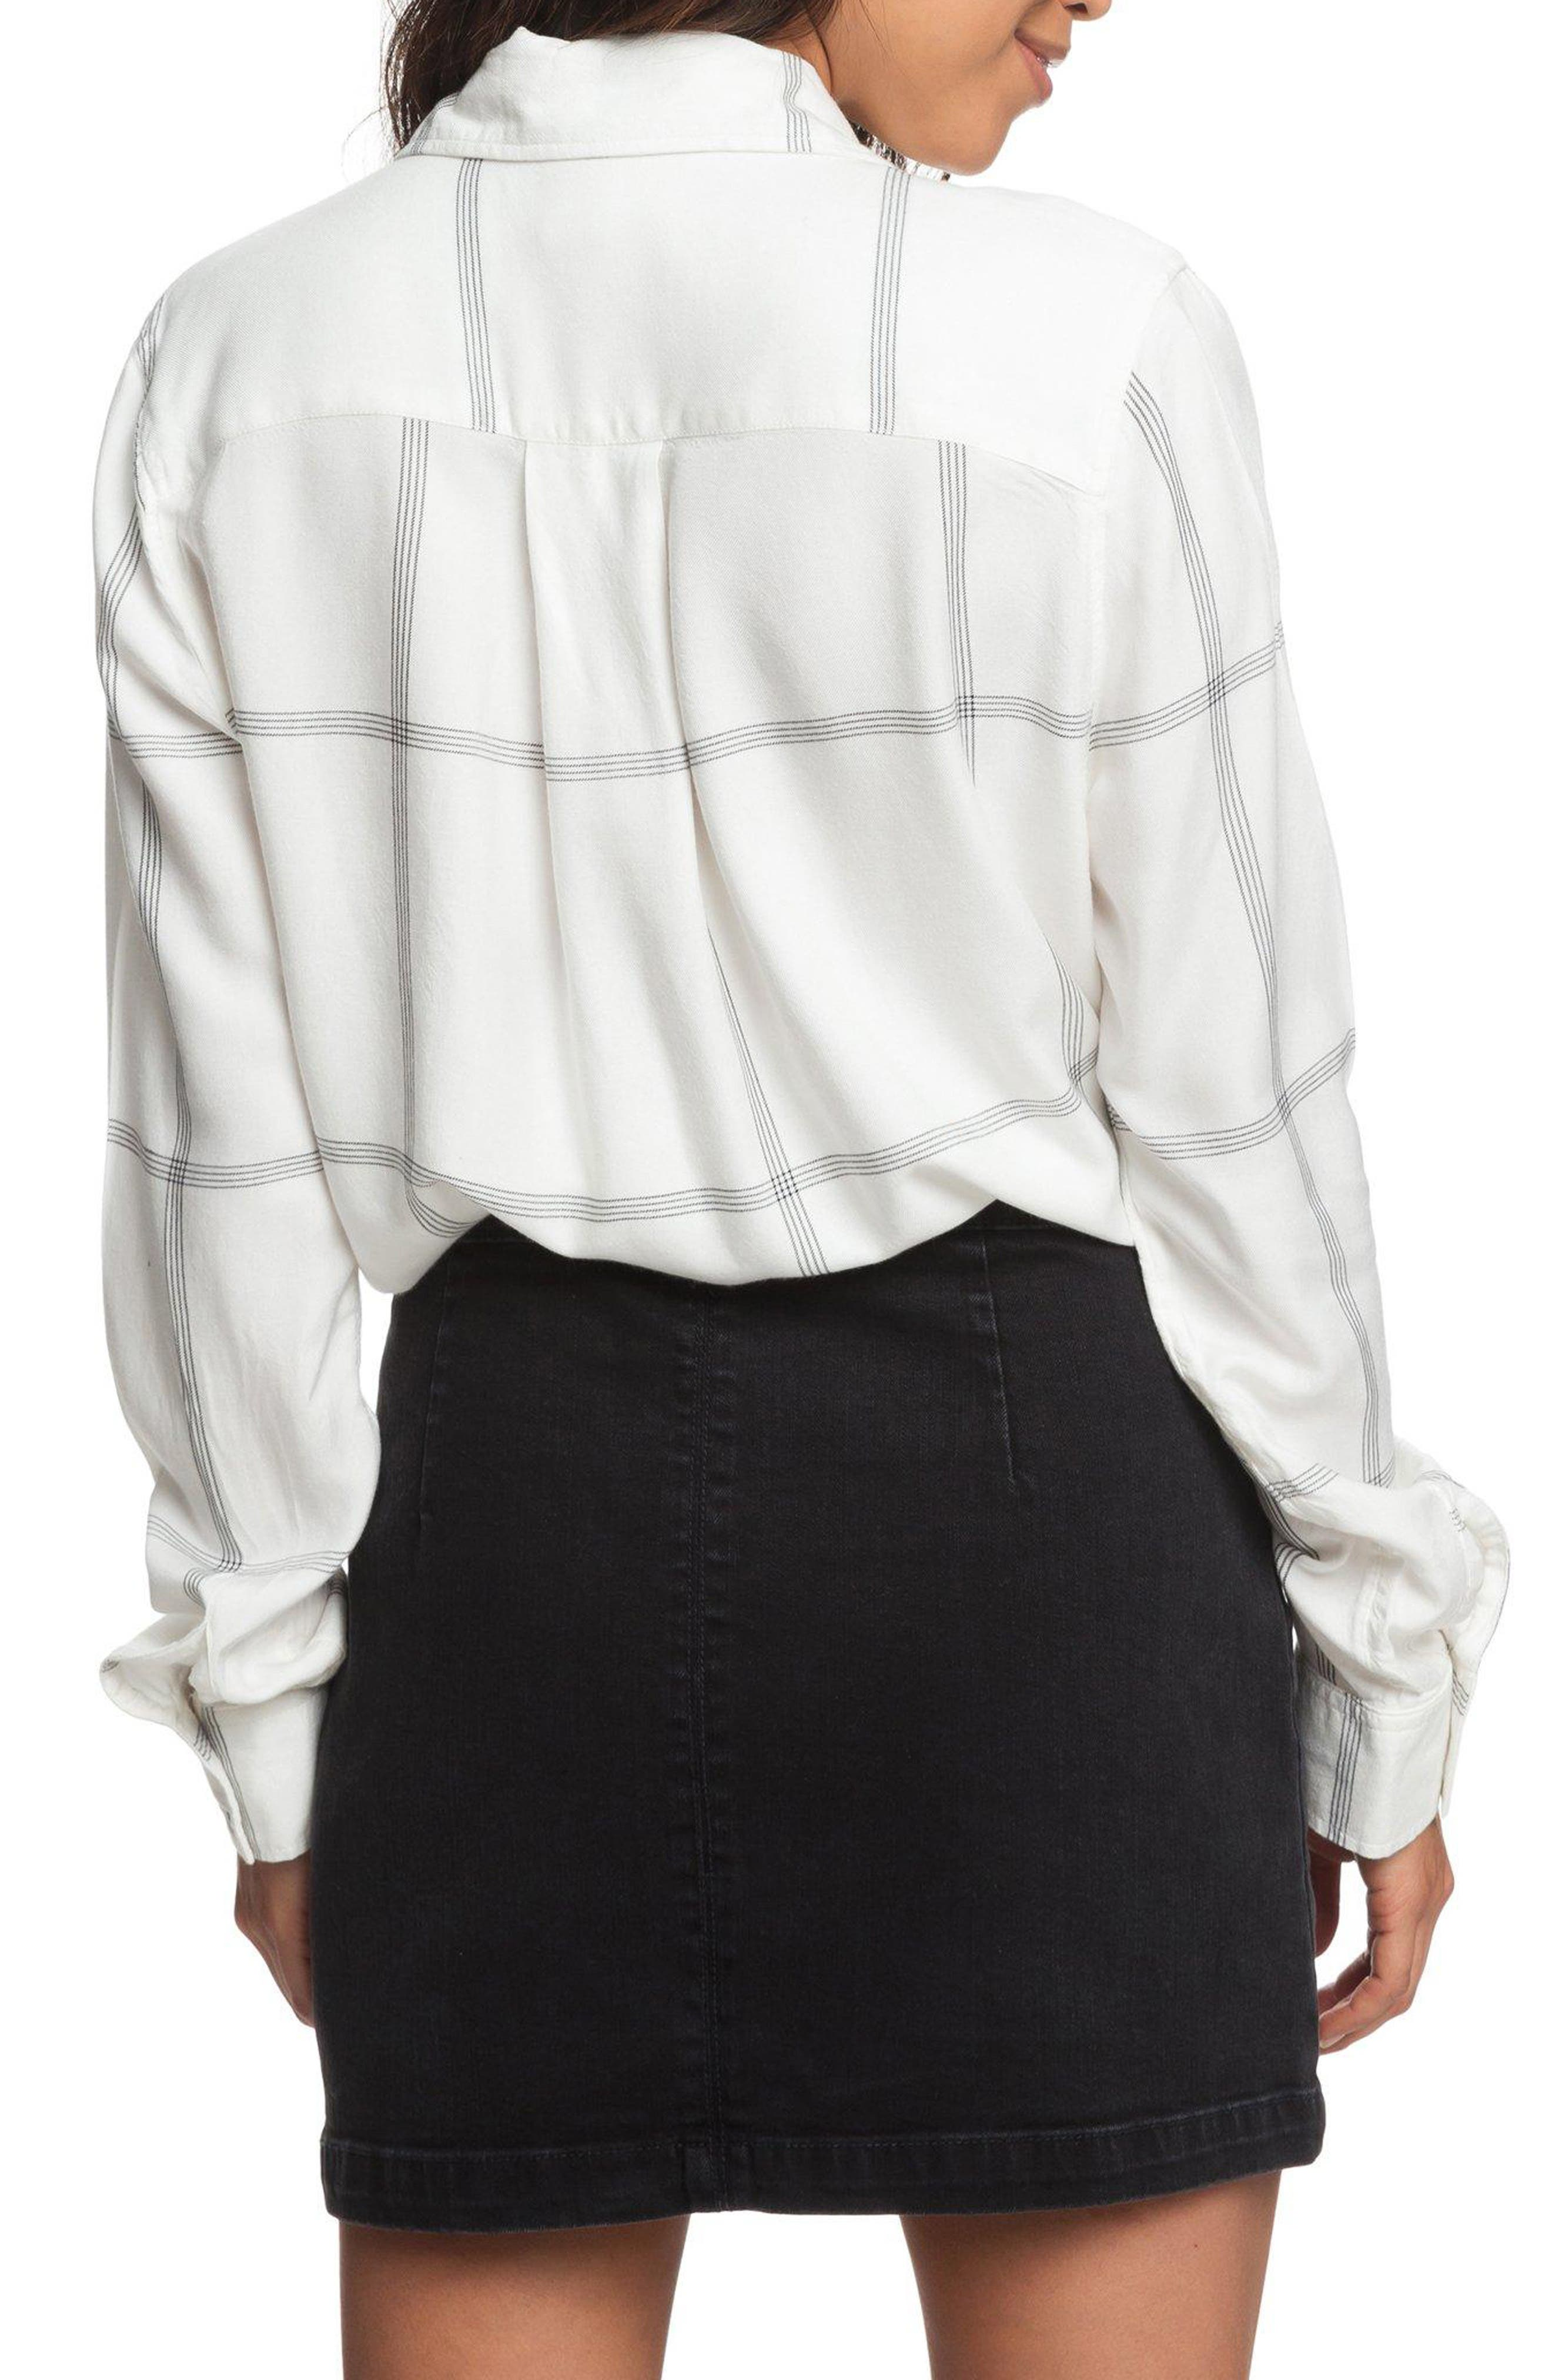 ROXY,                             Suburb Vibes Tie Waist Top,                             Alternate thumbnail 2, color,                             100